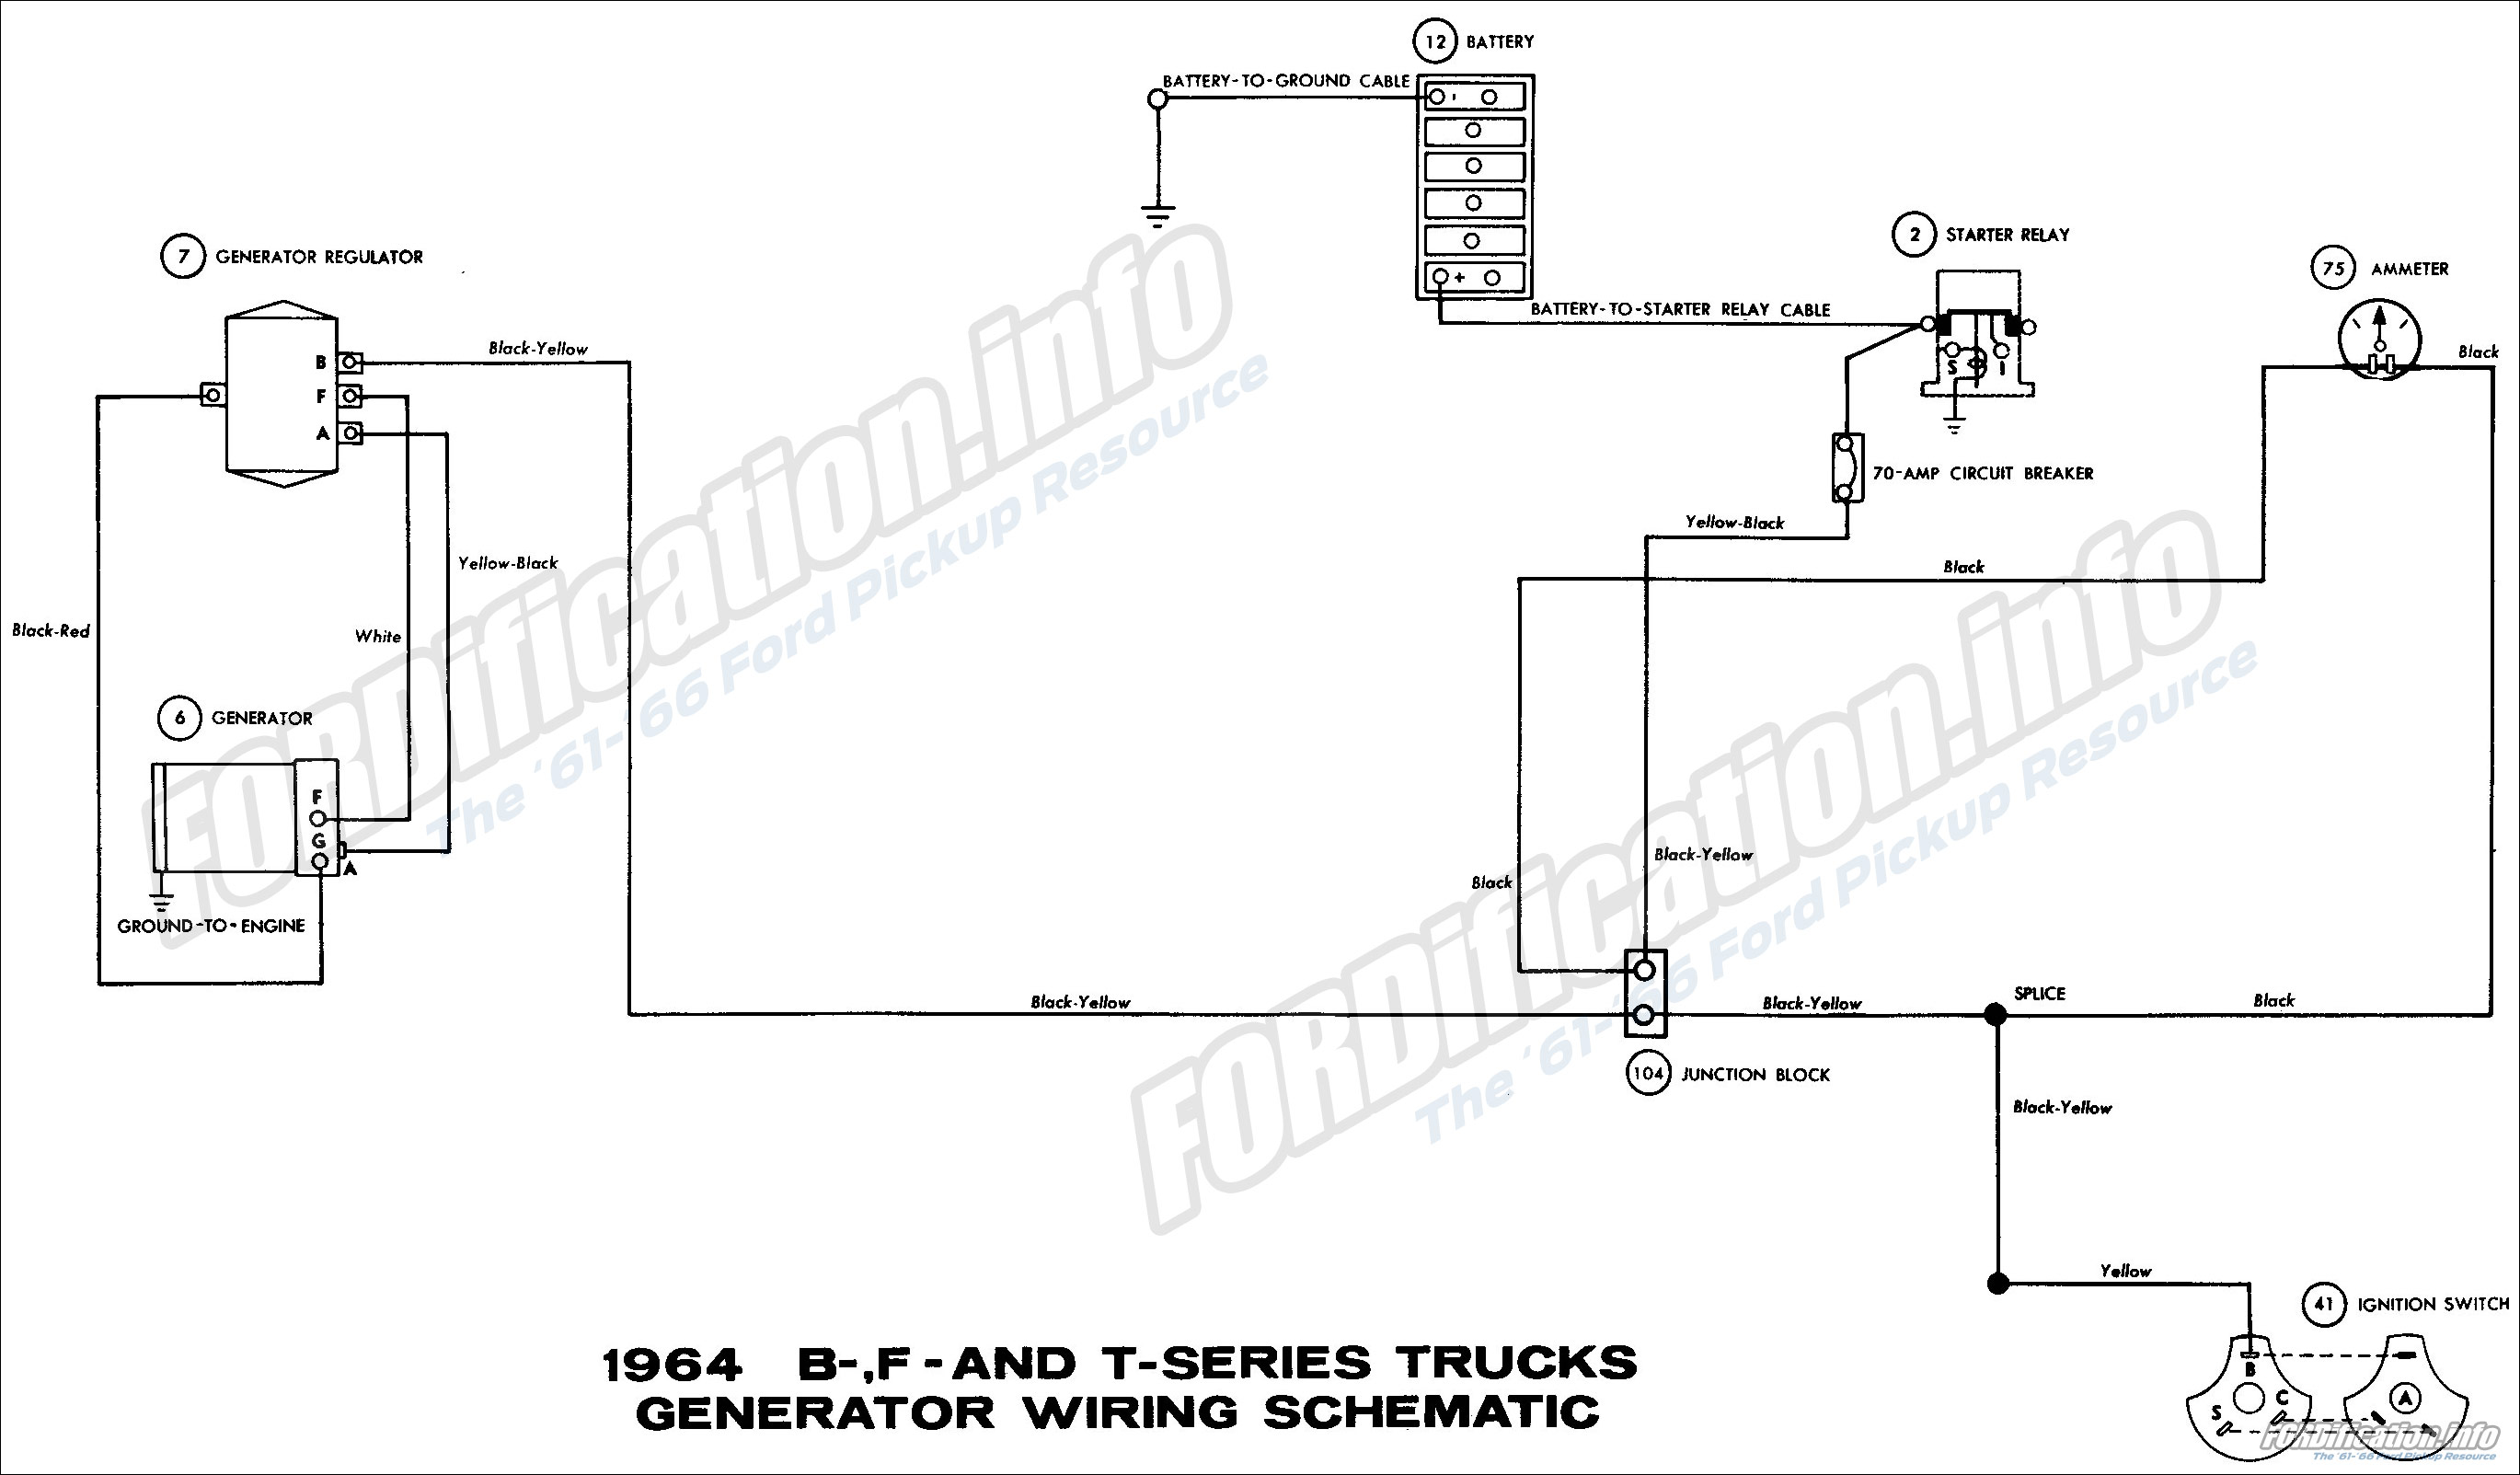 1964 Ford Truck Wiring Diagrams The 61 66 F250 Alternator Diagram B F And T Series Generator Schematic